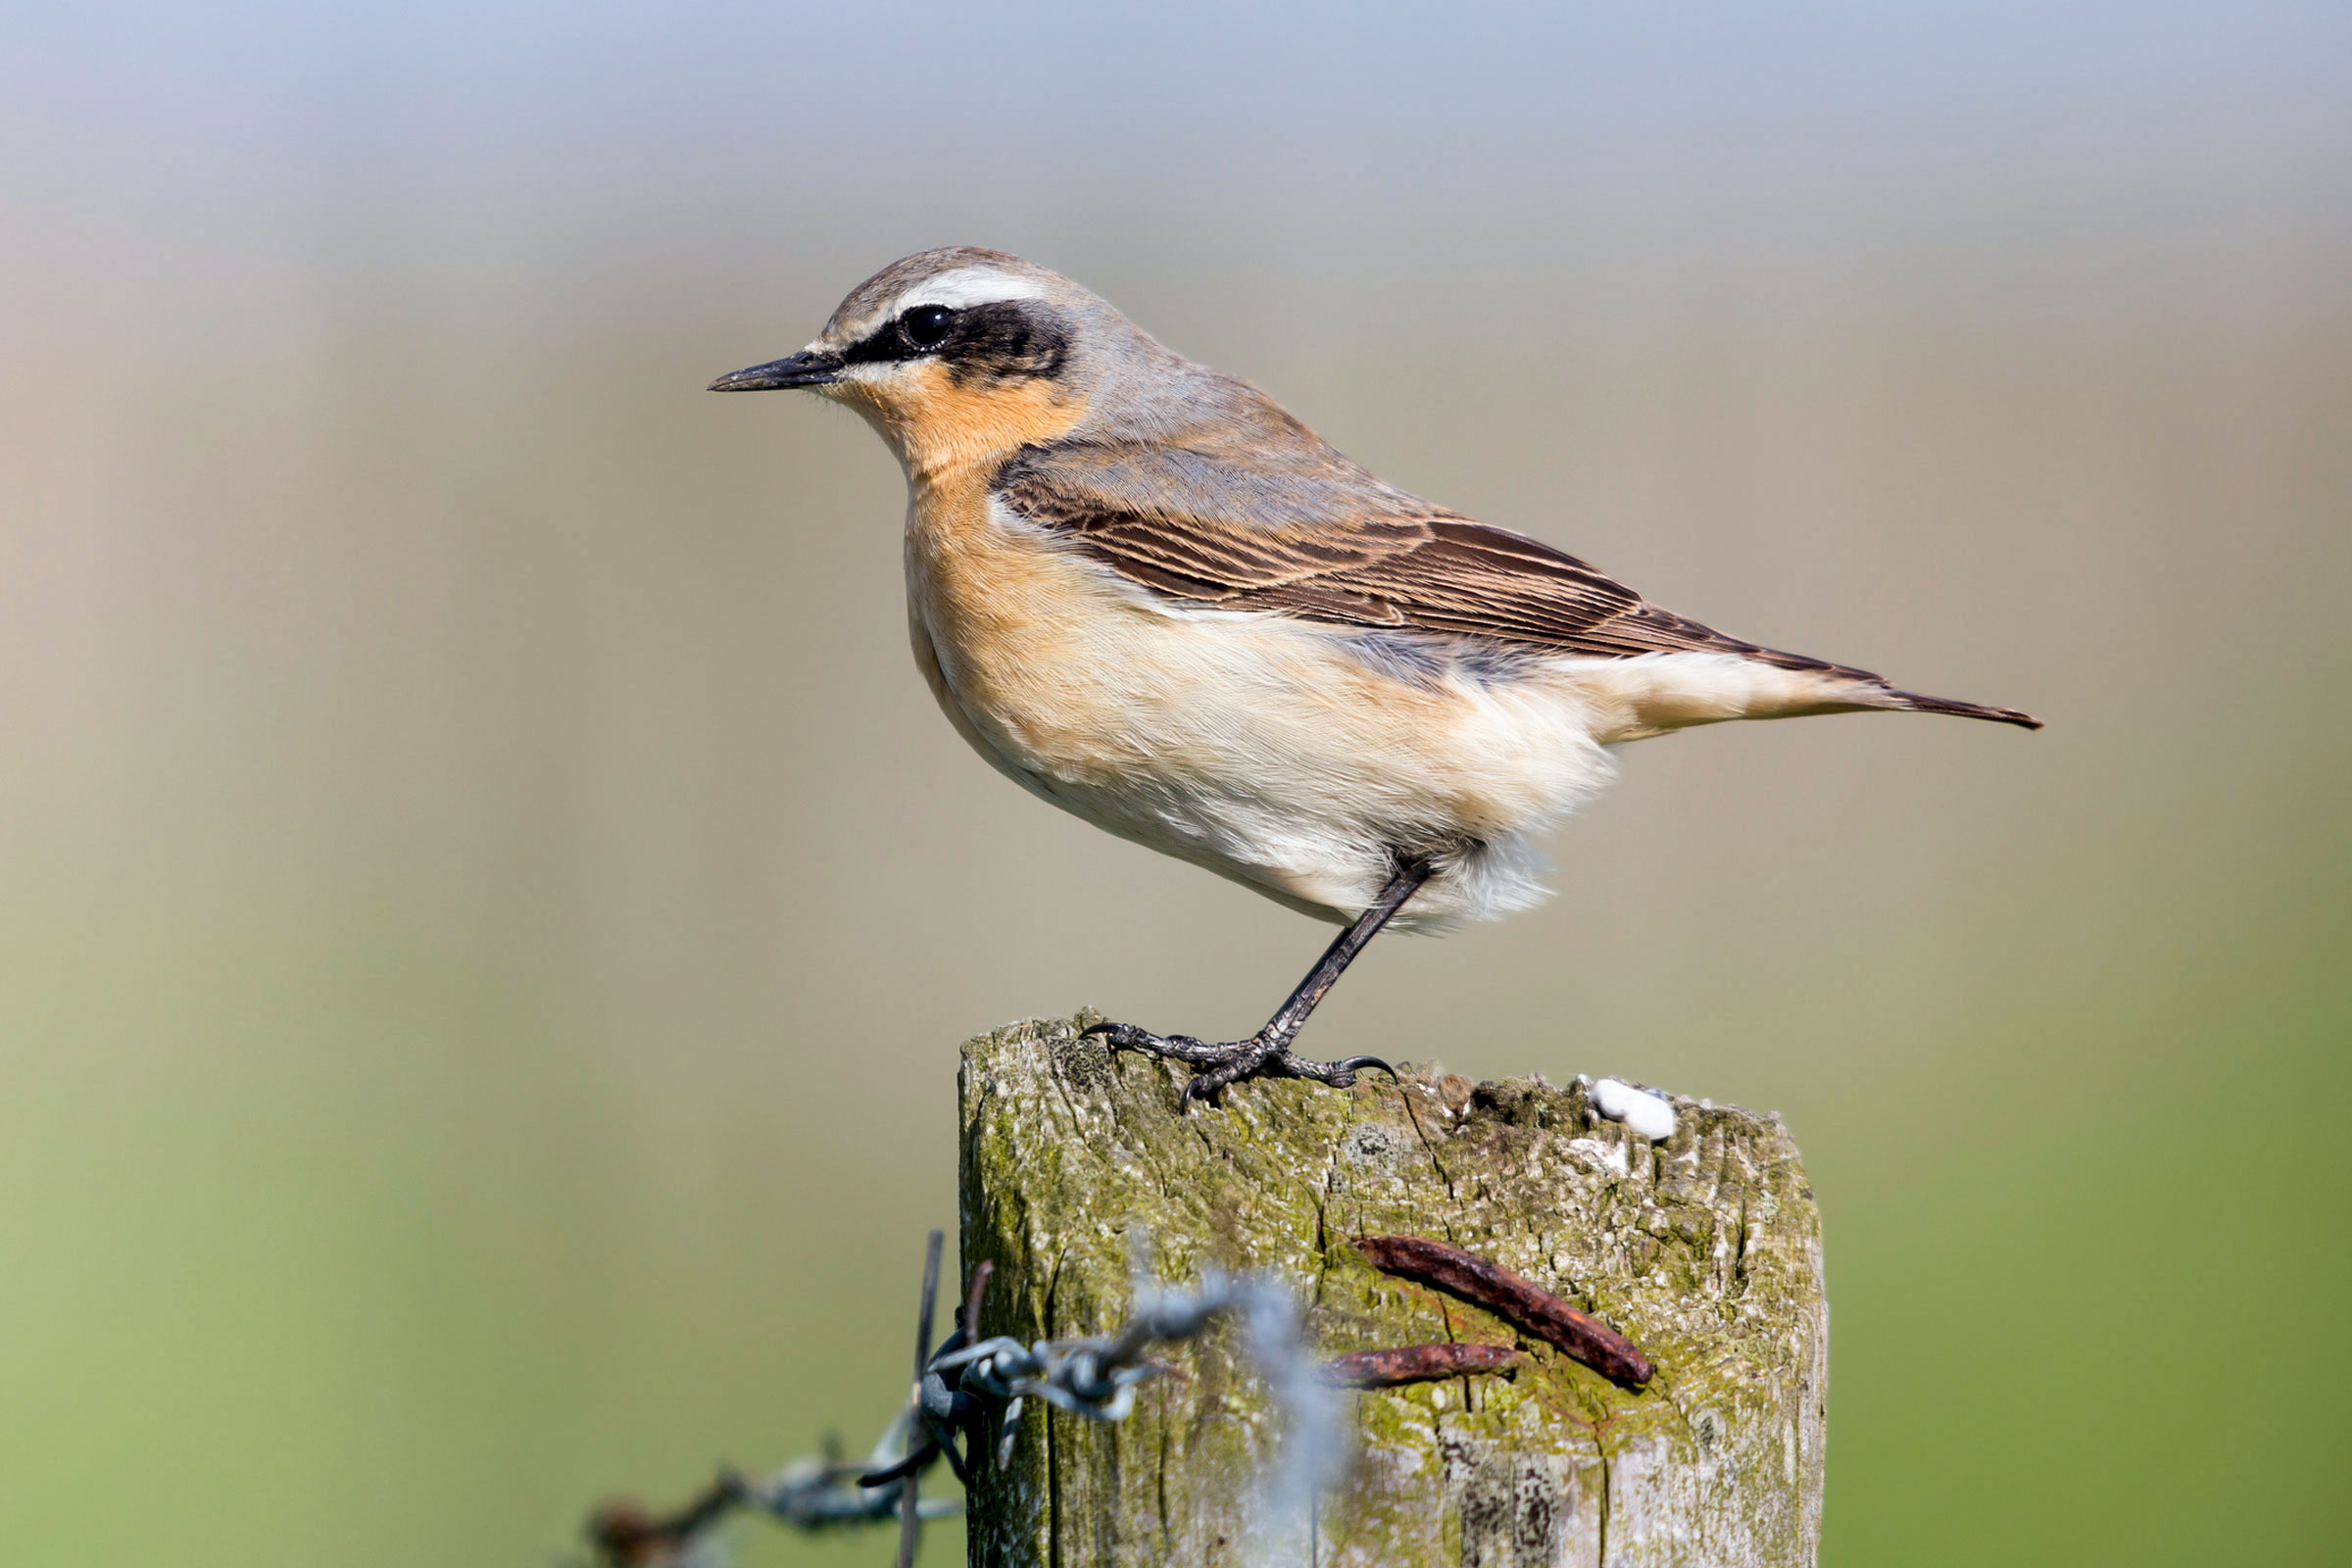 Northern Wheatear. Alby DeTweede/iStock